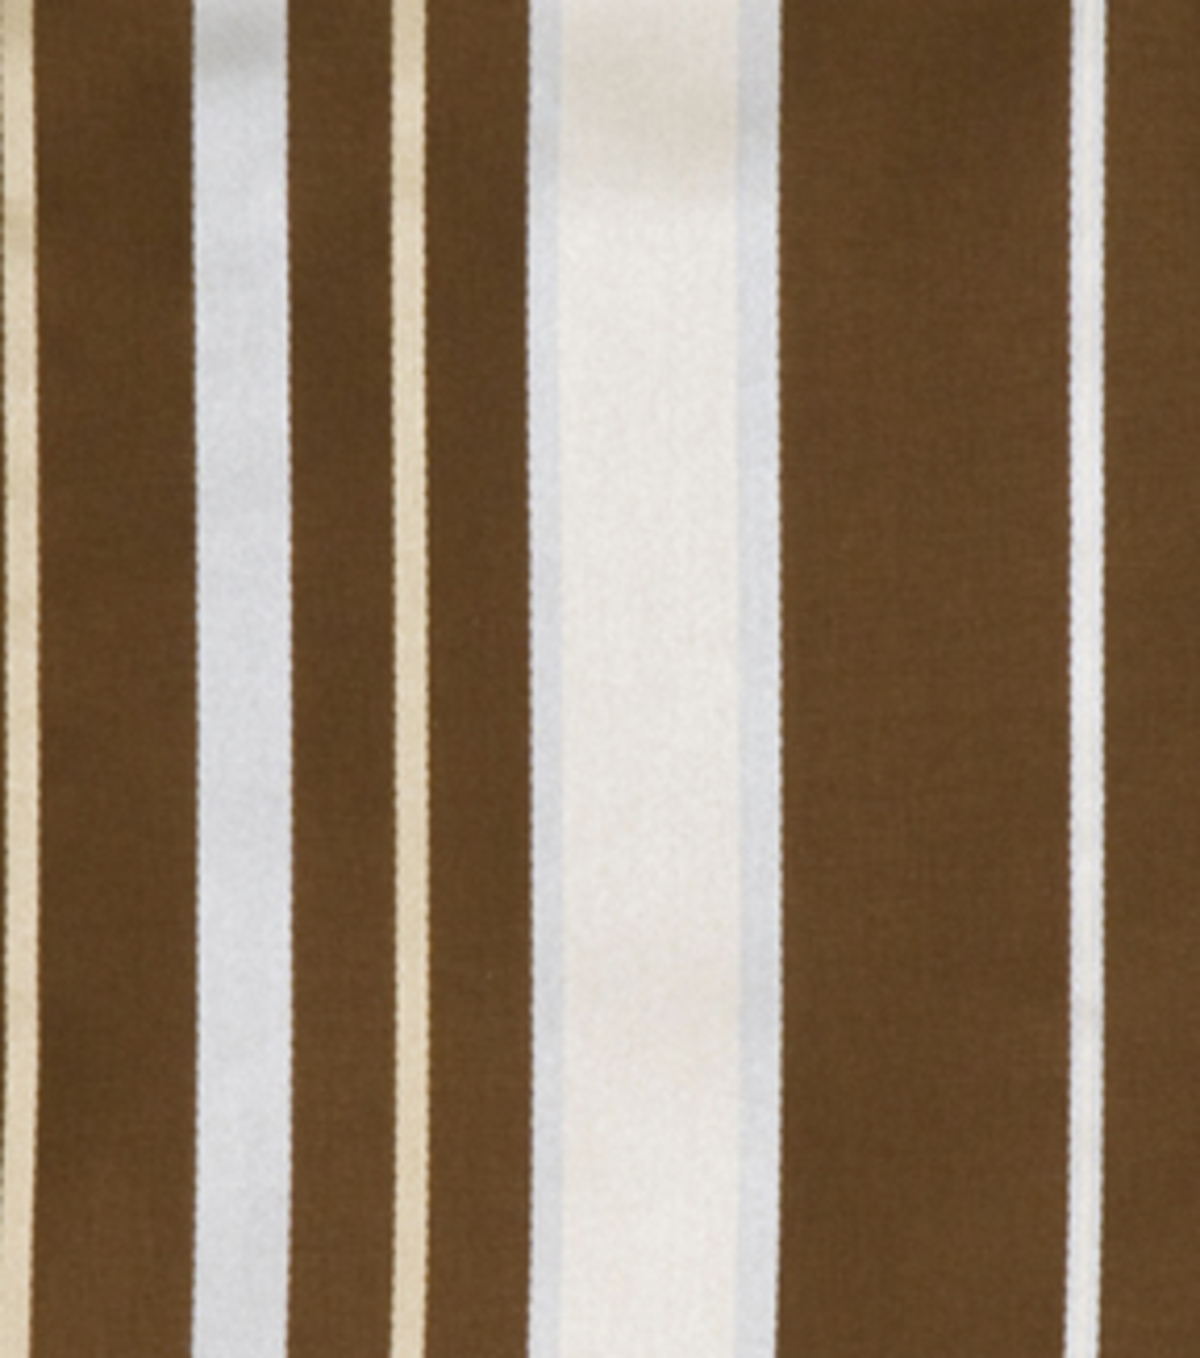 Home Decor 8\u0022x8\u0022 Fabric Swatch-Eaton Square Praise Molasses